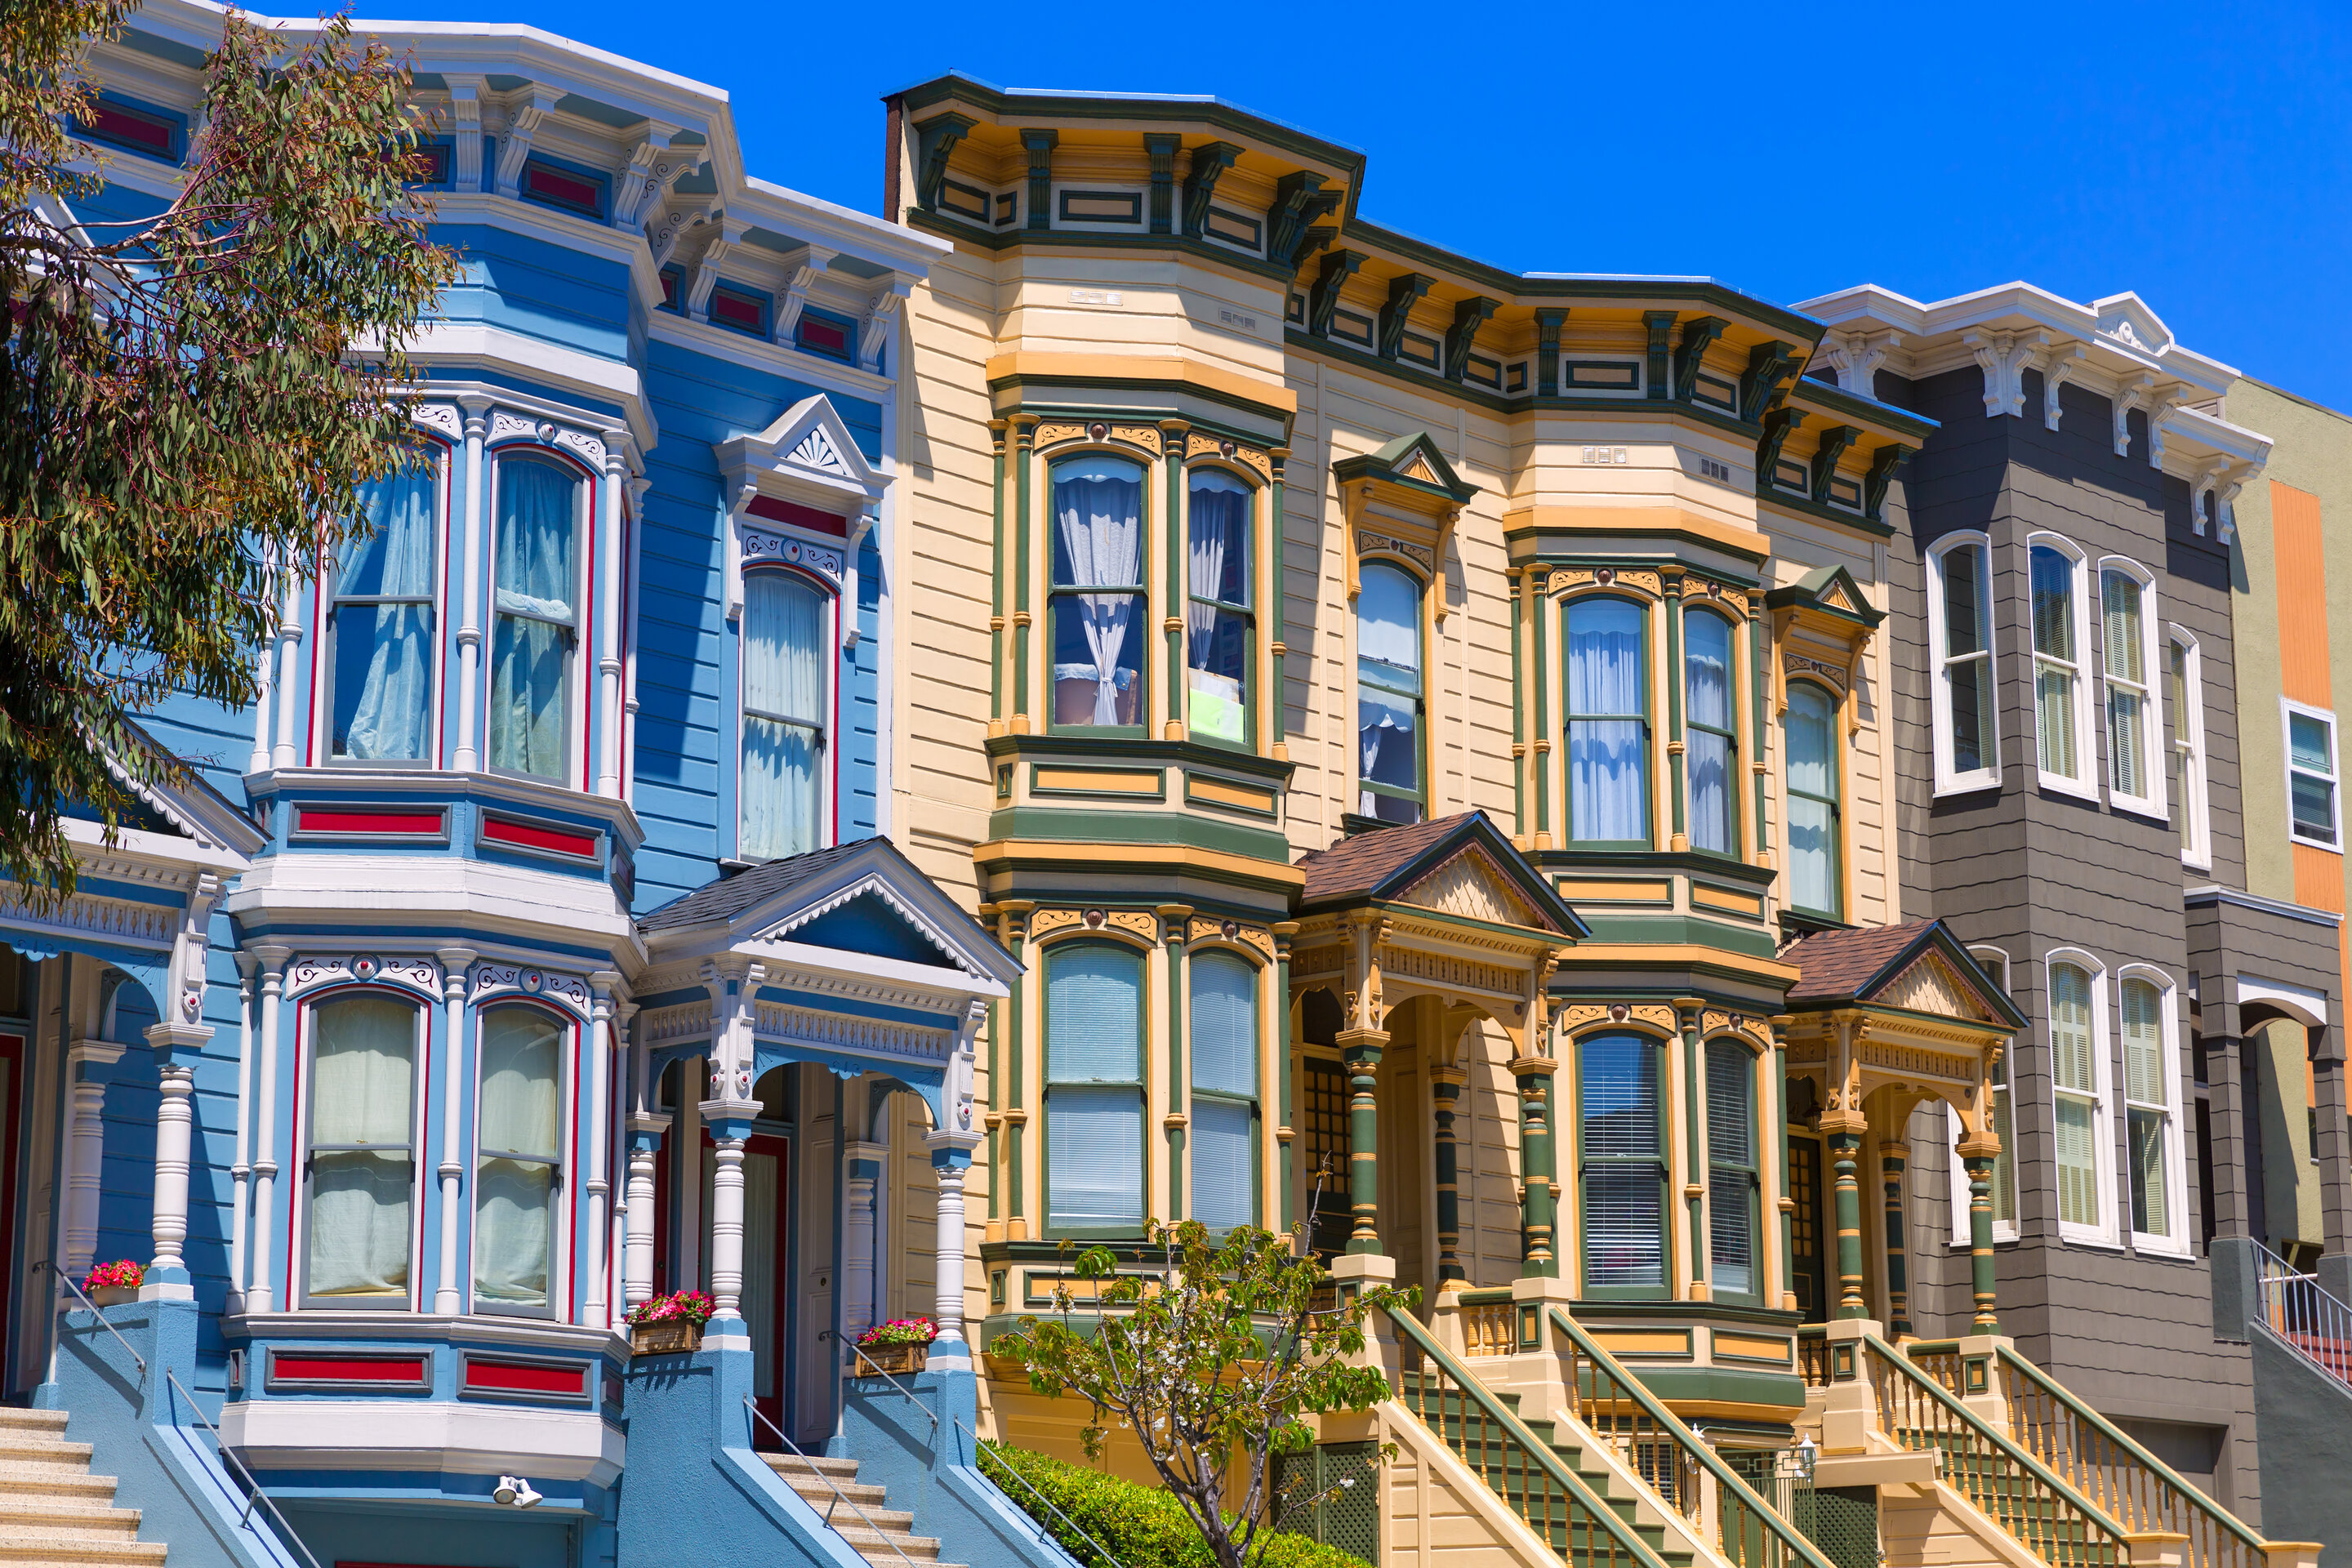 Colorful row homes in San Francisco, California painted yellow, blue, and brown.